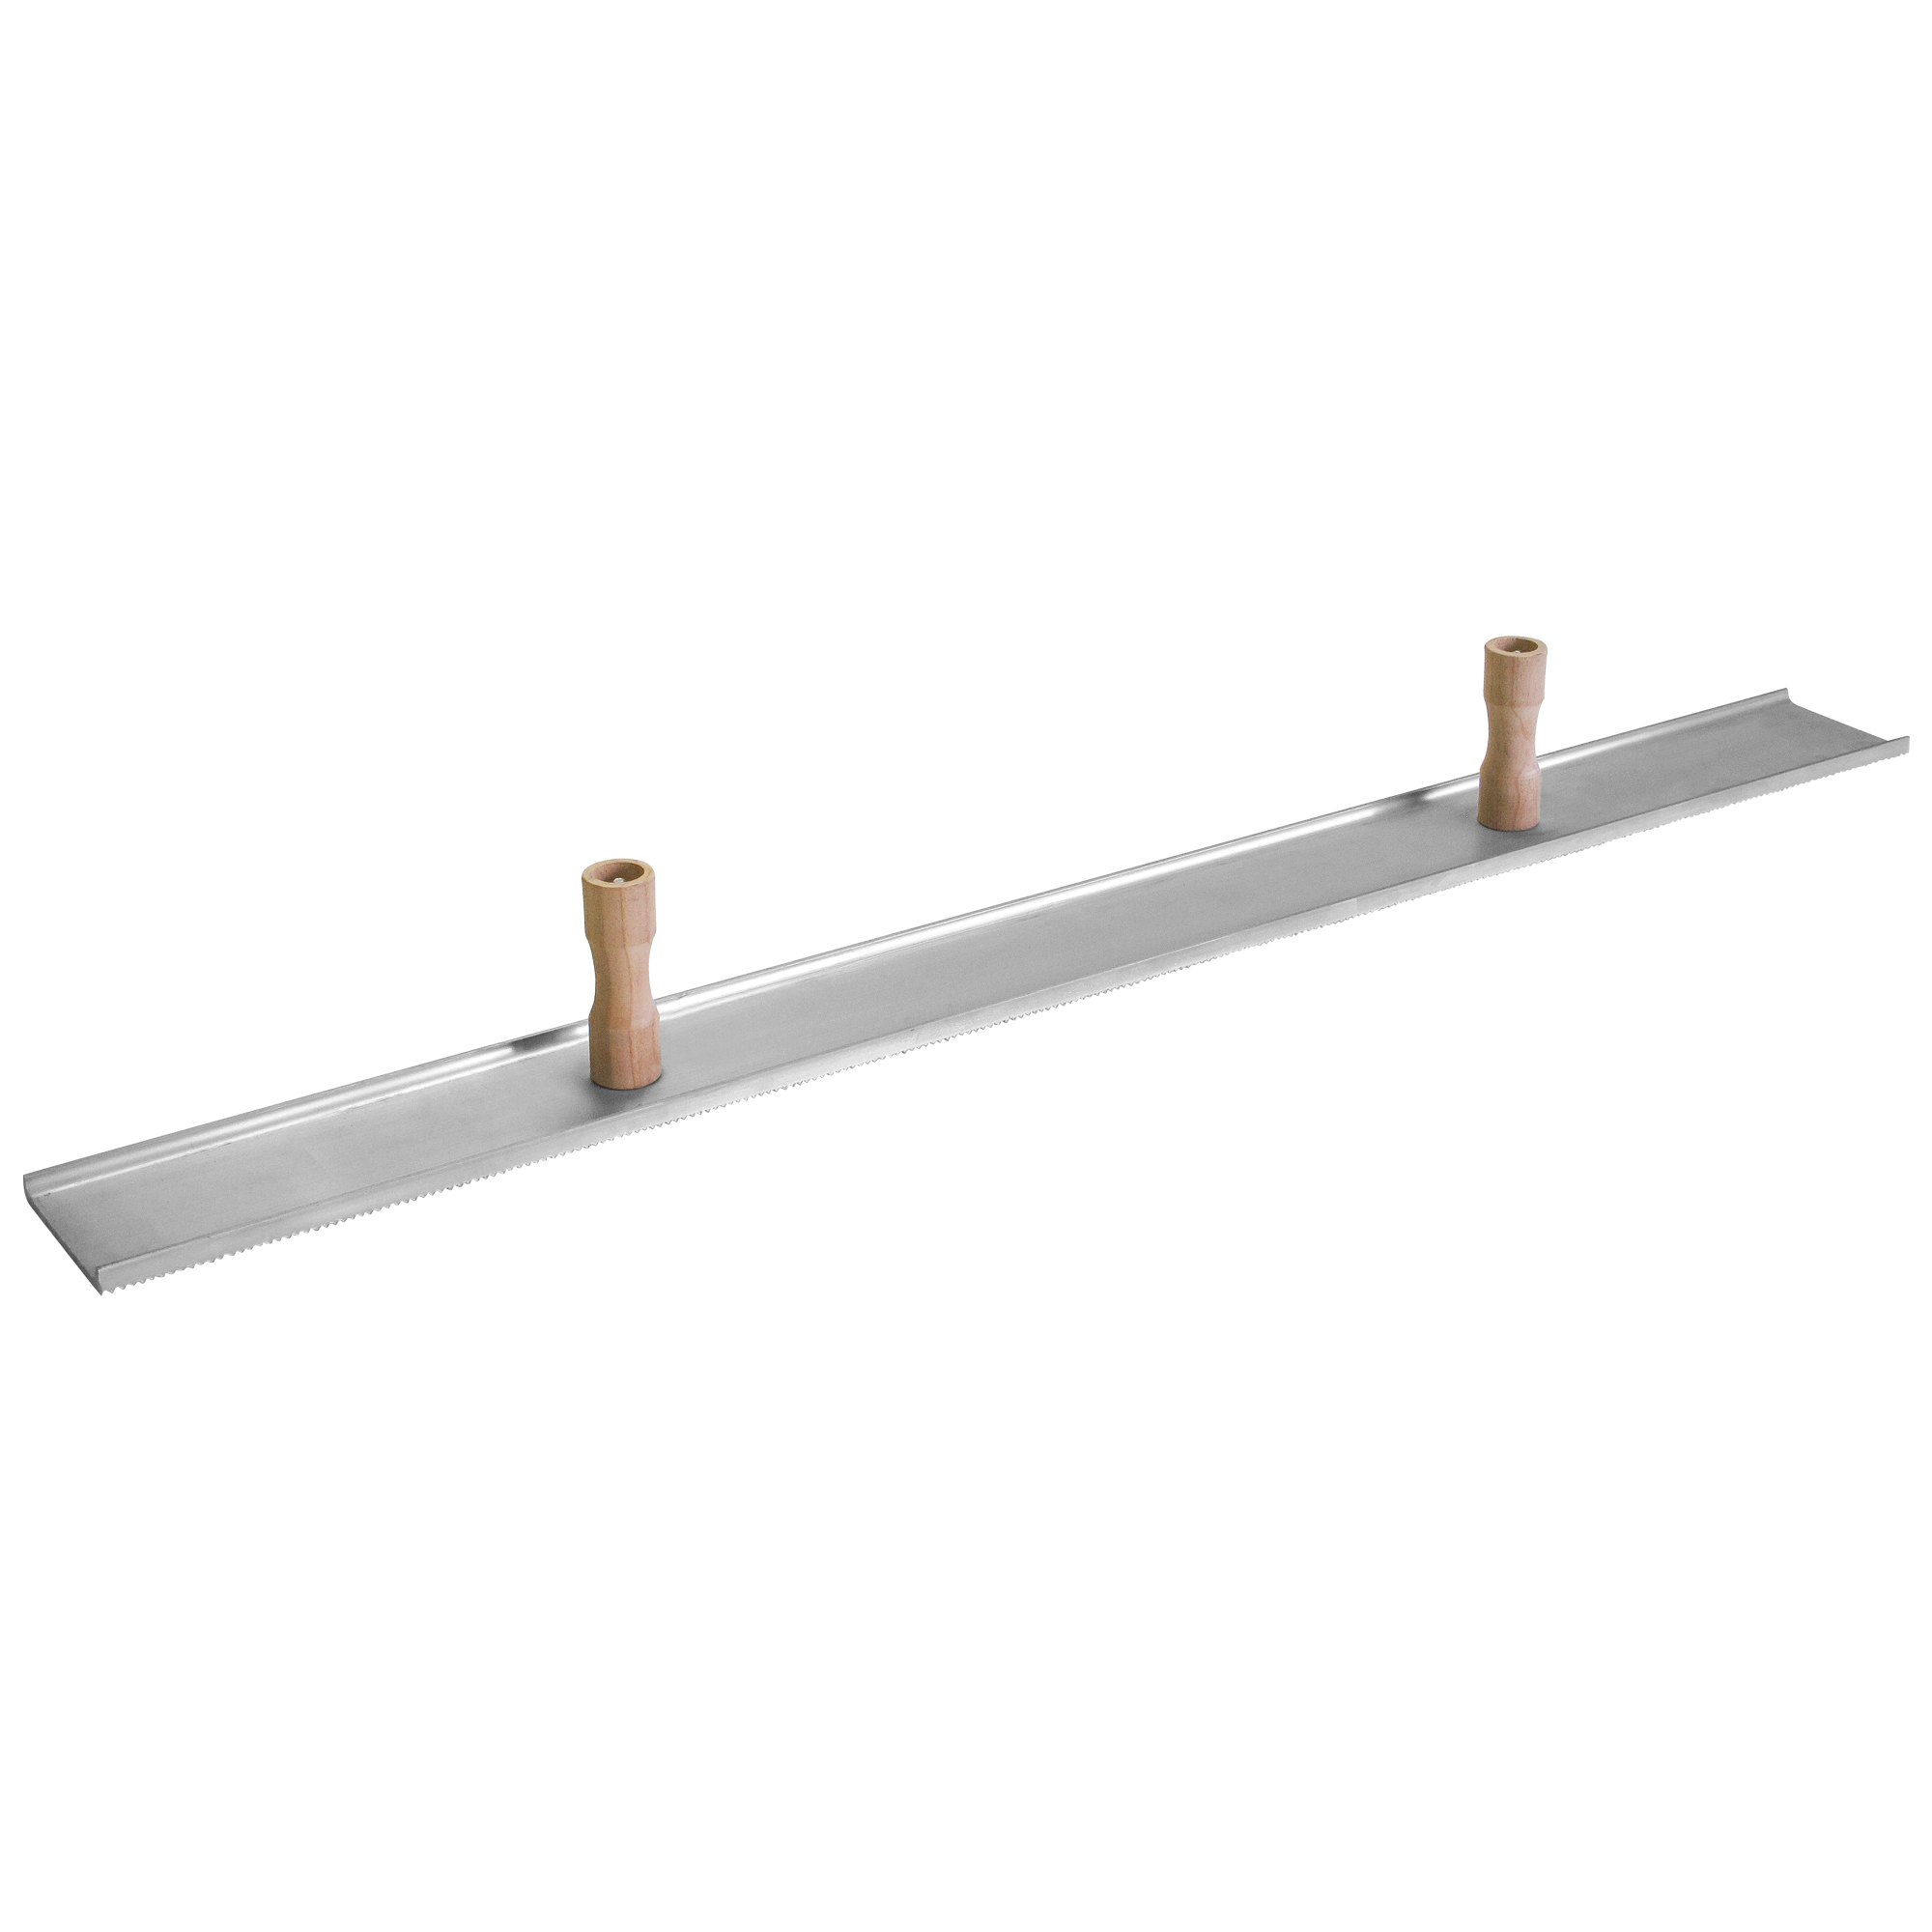 42inch Single Serrated Magnesium Darby With 2-knob Handle - Pl414 - Measuring & Sensors Tools Drywall Plastering Darbies PL414